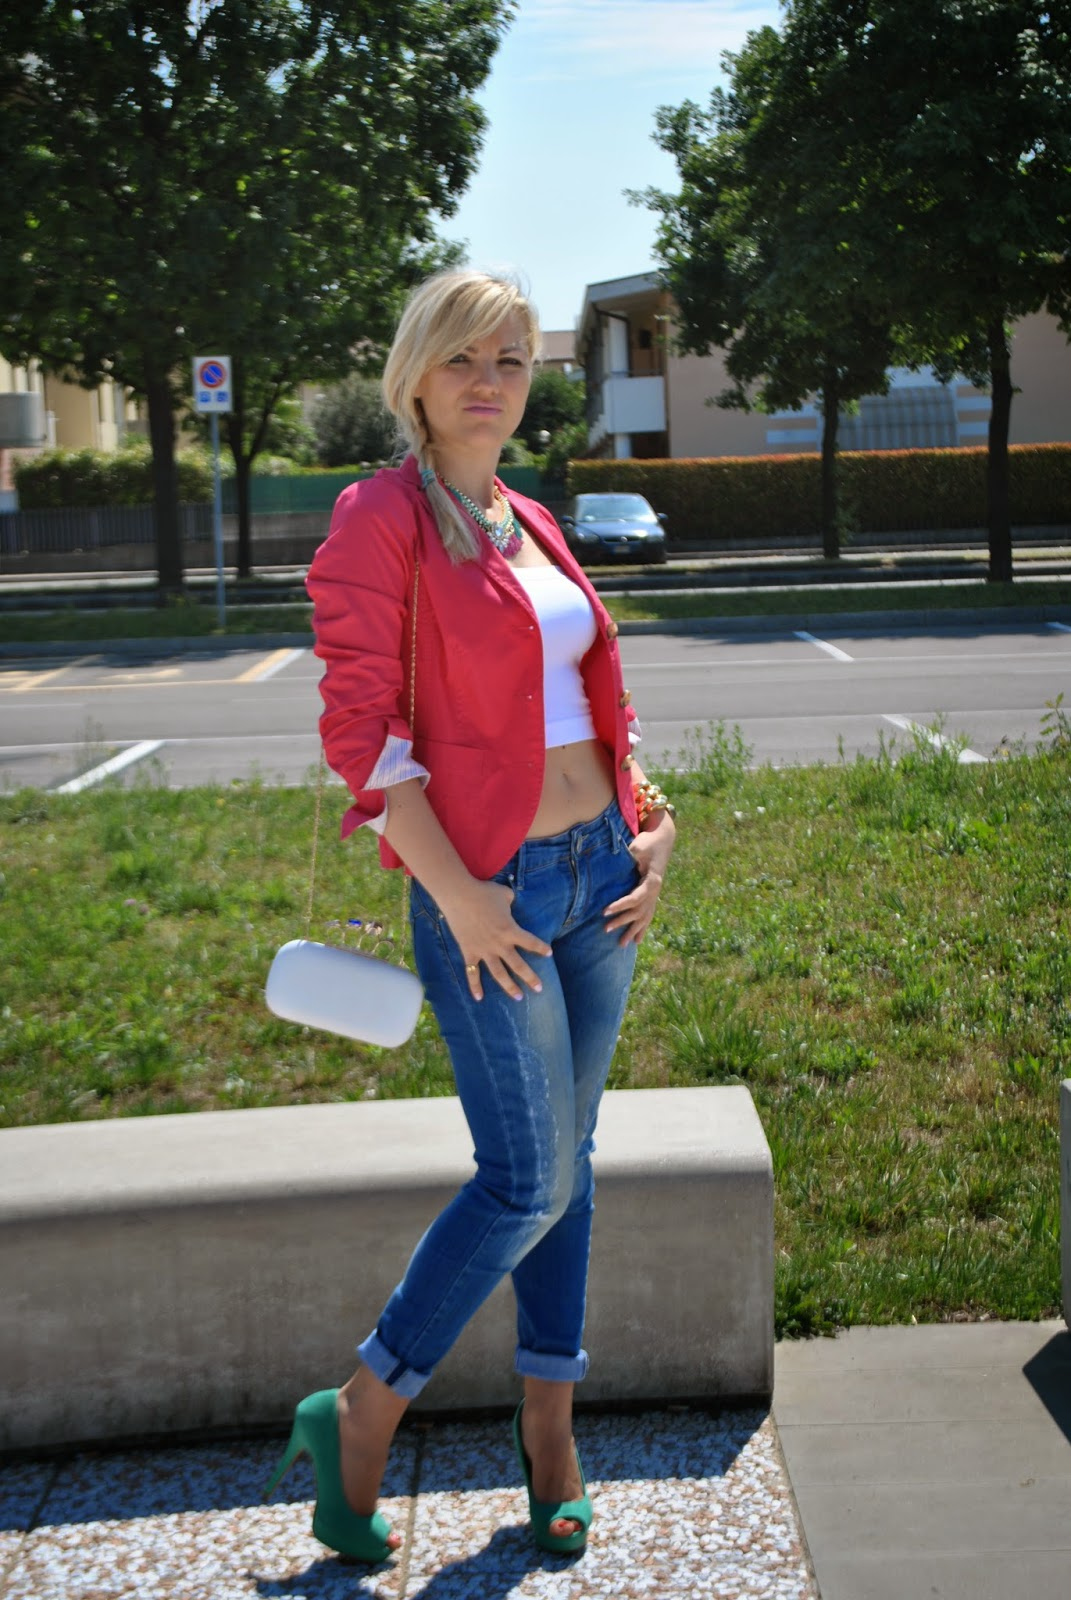 outfit skinny jeans top a fascia bianco giacca fucsia collana con catena e pietre majique london scarpe decollete verdi outfit crop top outfit tacchi e jeans outfit jeans e tacchi outfit blazer fucsia come abbinare il blazer fucsia clutch con catena alexander McQueen outfit mariafelicia magno blogger di colorblock by felym outfit di colorblock by felym fashion blog di mariafelicia magno treccia laterale outfit treccia laterale outfit treccia di lato blazer fucsia benetton outfit giugno 2014 outfit estate 2014 outfit estivi